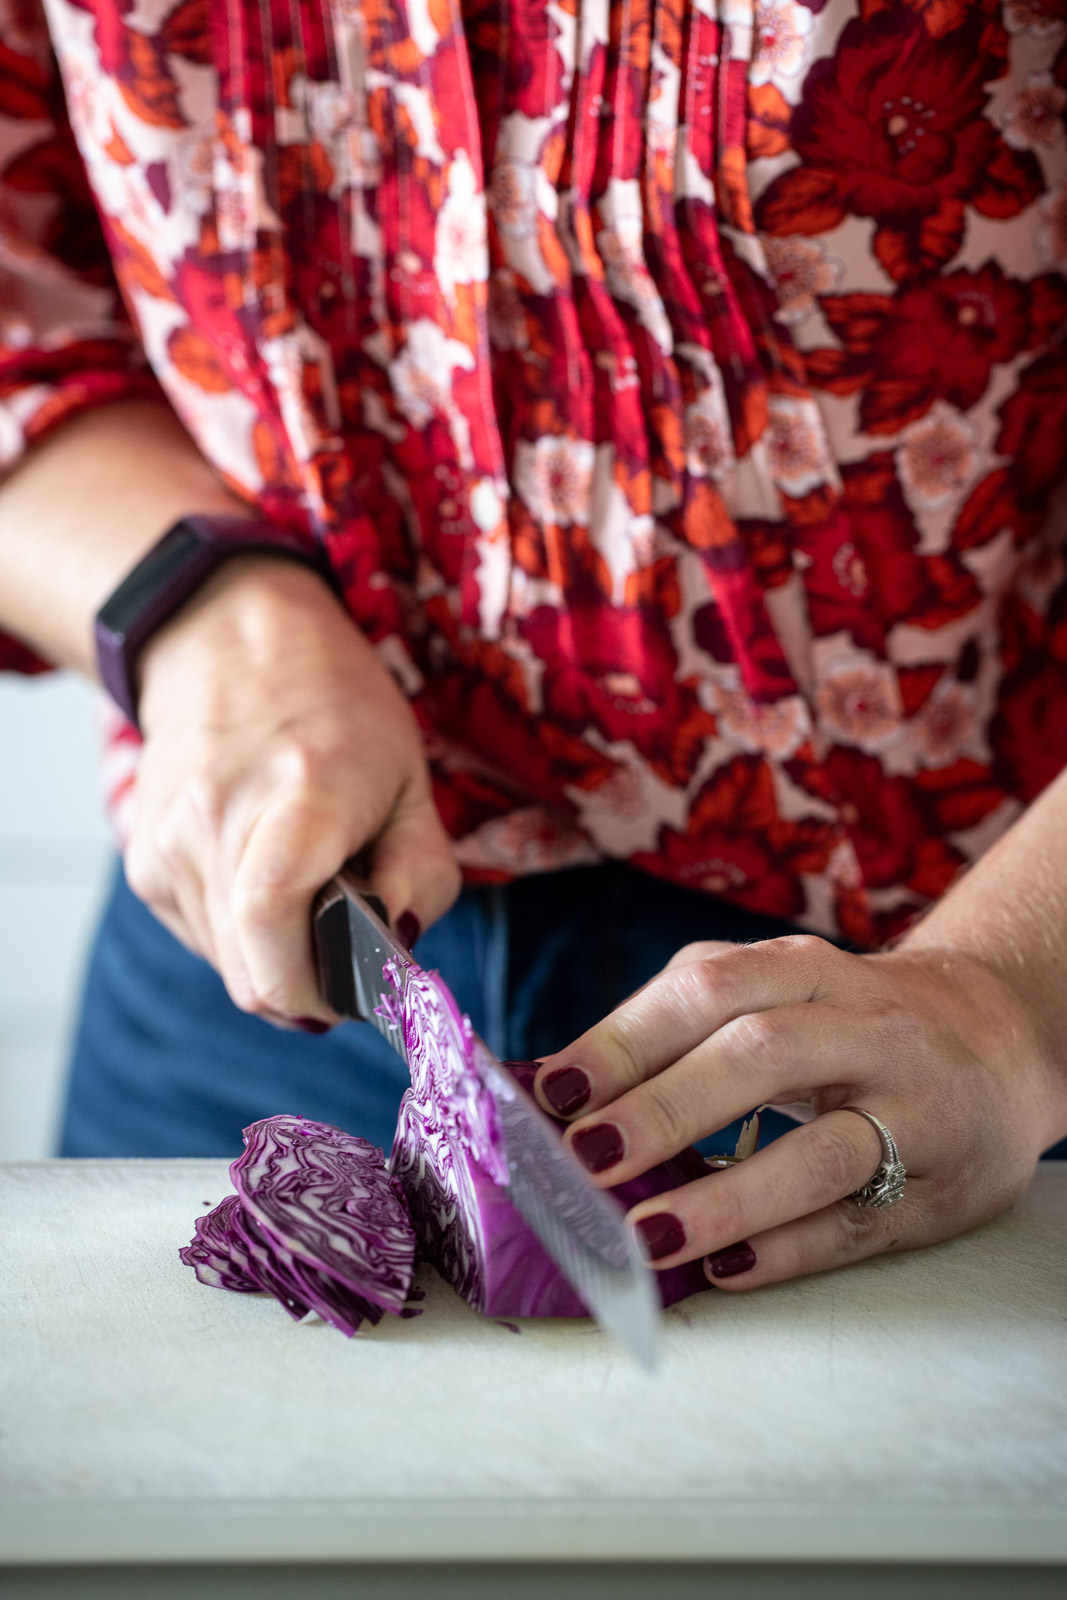 Woman slicing red cabbage on a plastic cutting board.